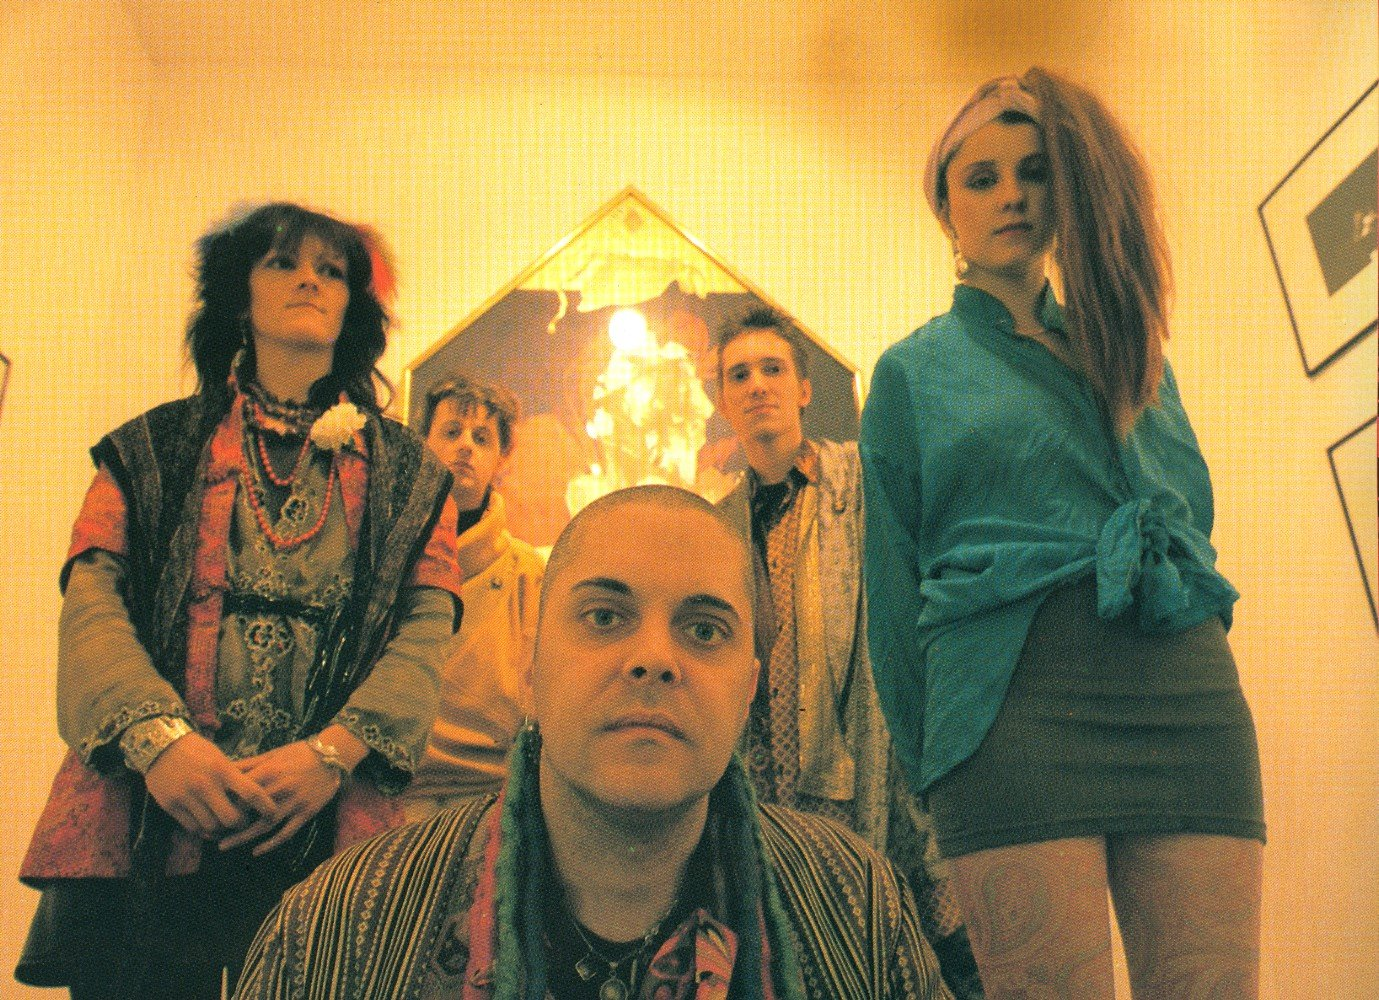 Genesis P-Orridge Talks Psychic TV, Brian Jones, How New York Has Changed, and More